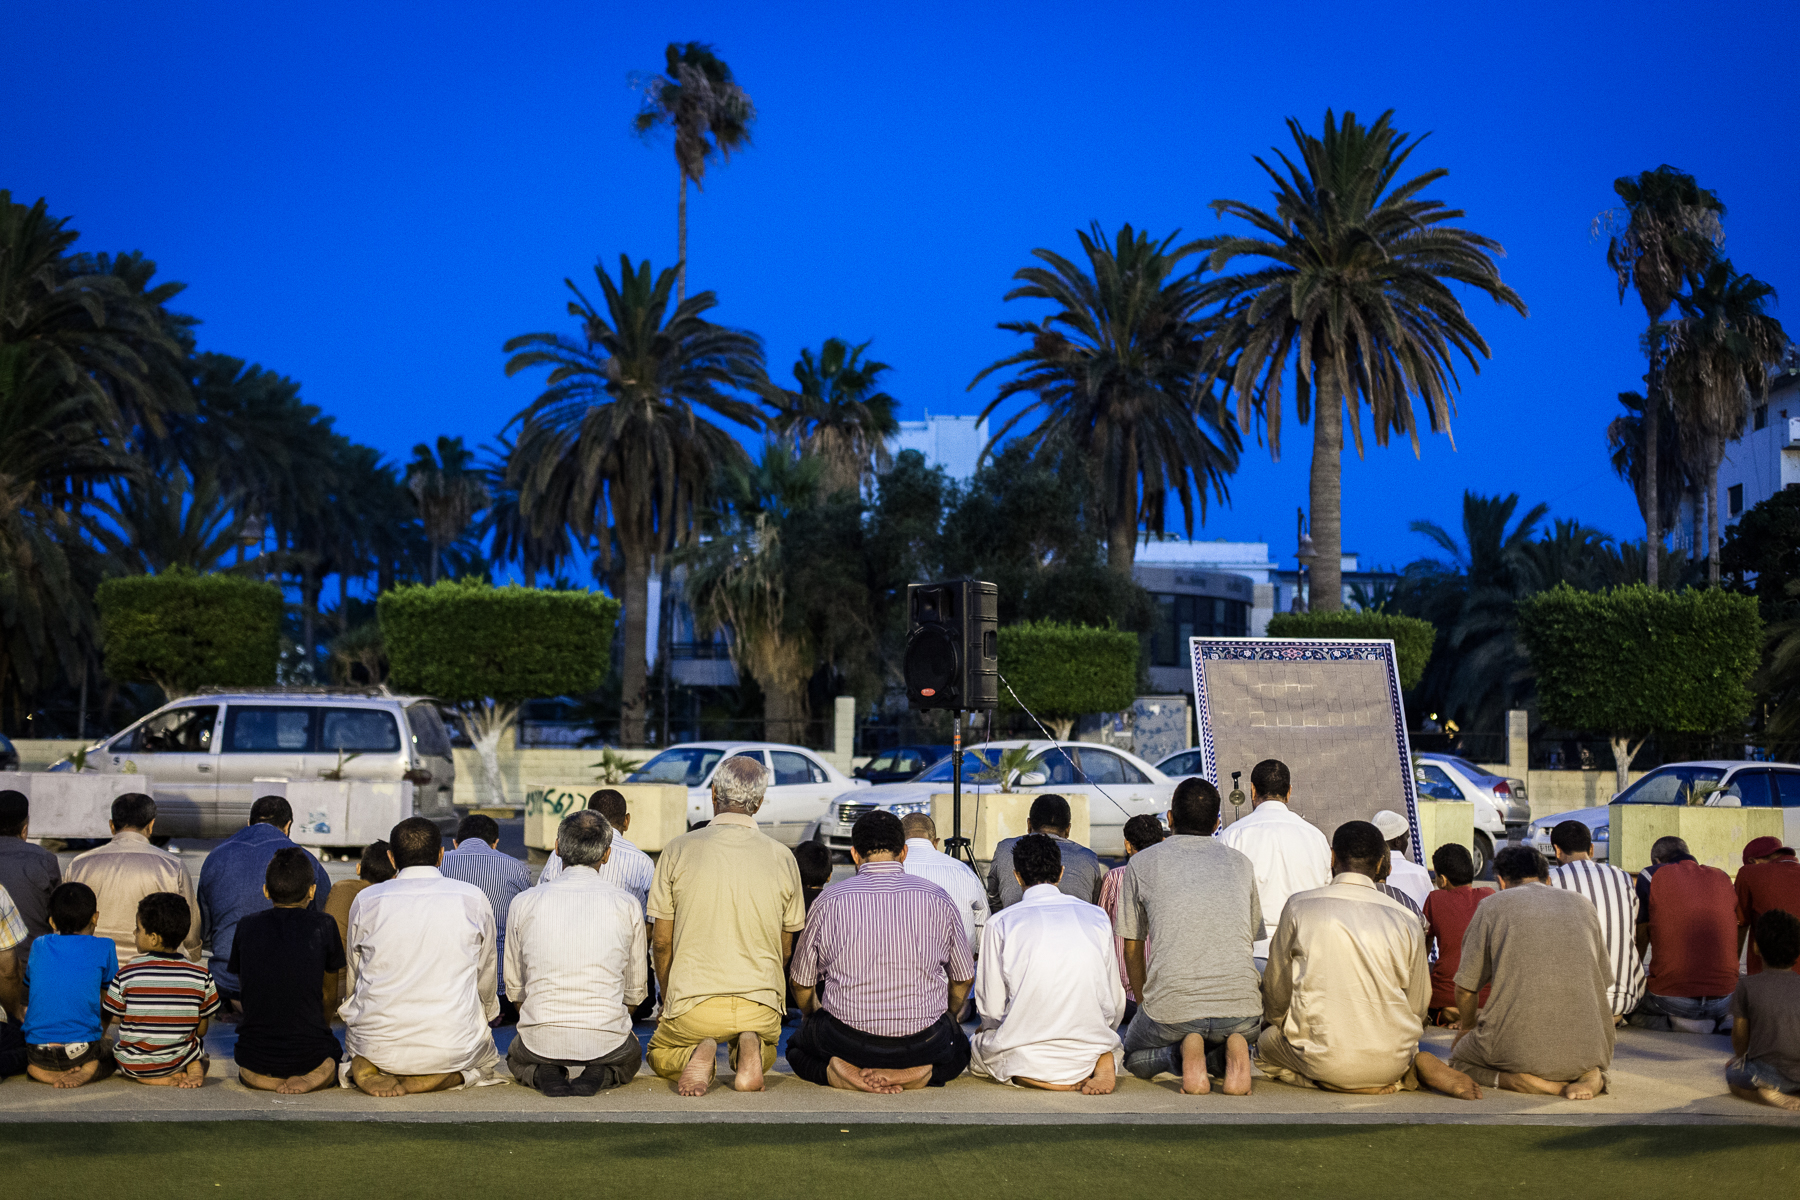 Tripoli, le 13 Juillet 2015. Rupture du jeûne du ramadan sur la place des martyrs.  Tripoli, 13th July 2015. Breaking the fast of Ramadan in Martyr square.